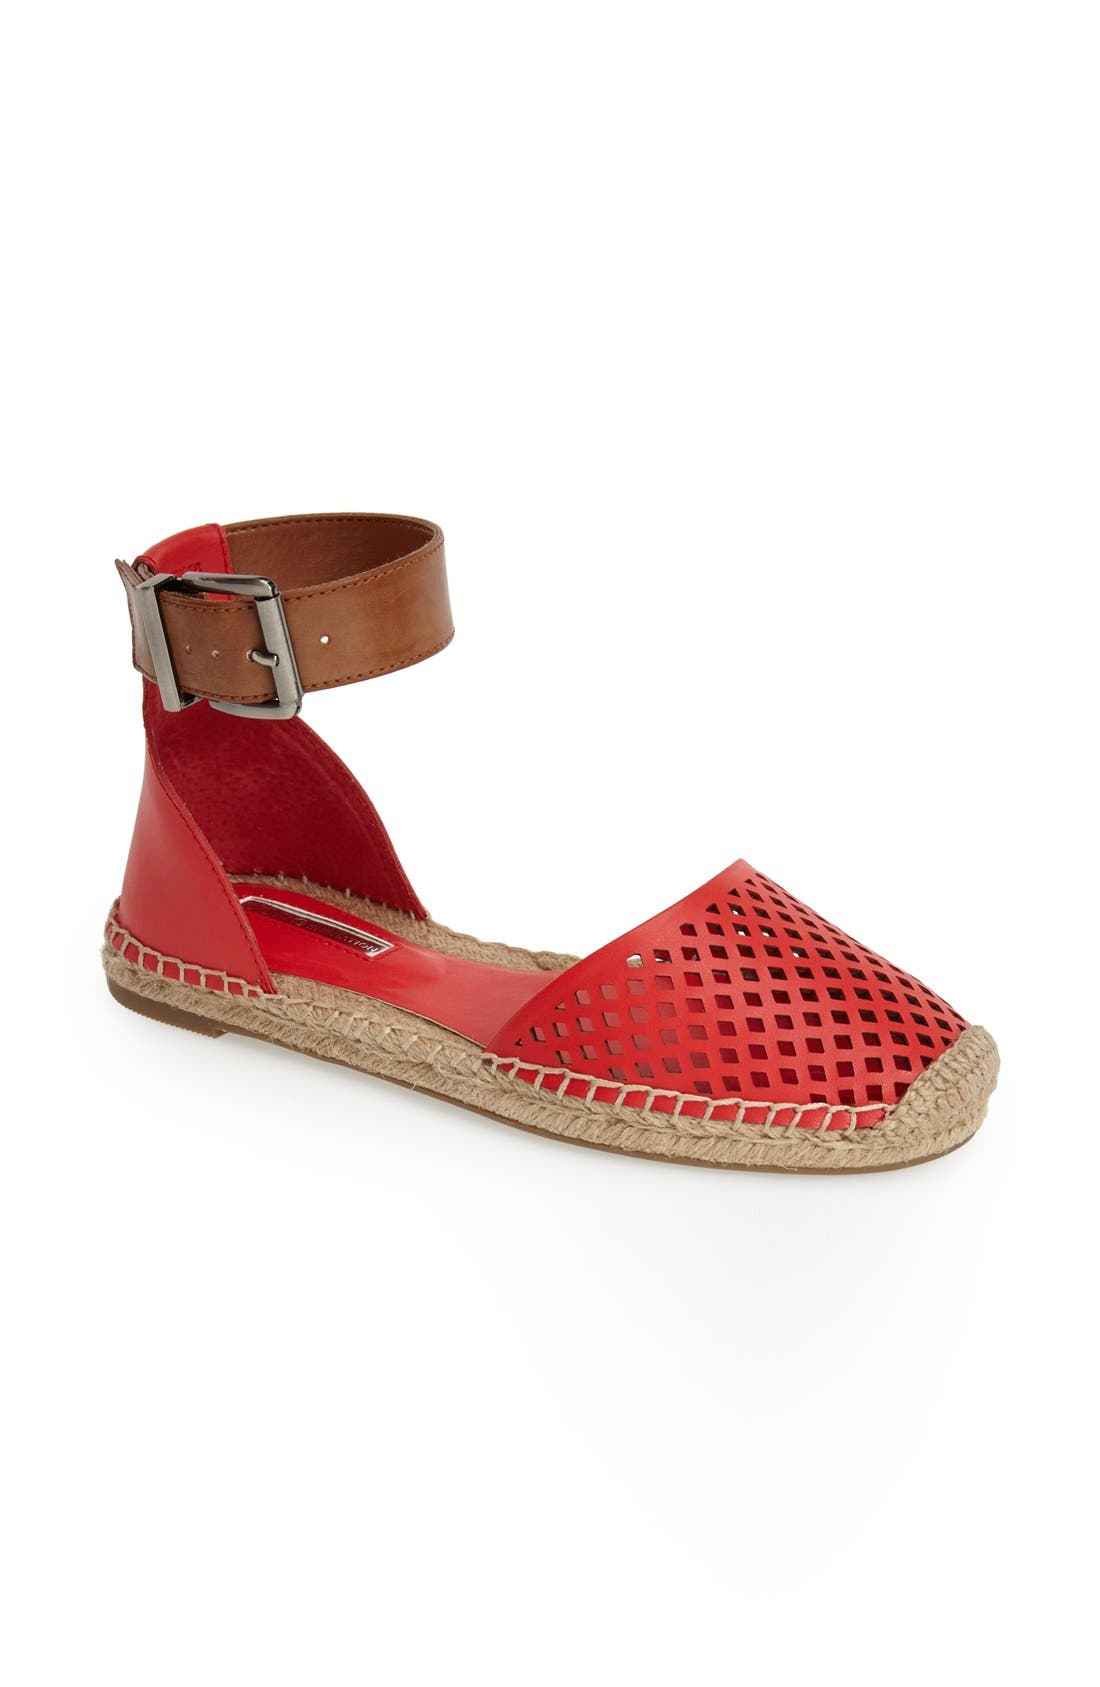 'Felicity 2' Ankle Strap Espadrille Flat,                         Main,                         color, Passion/ Toffee